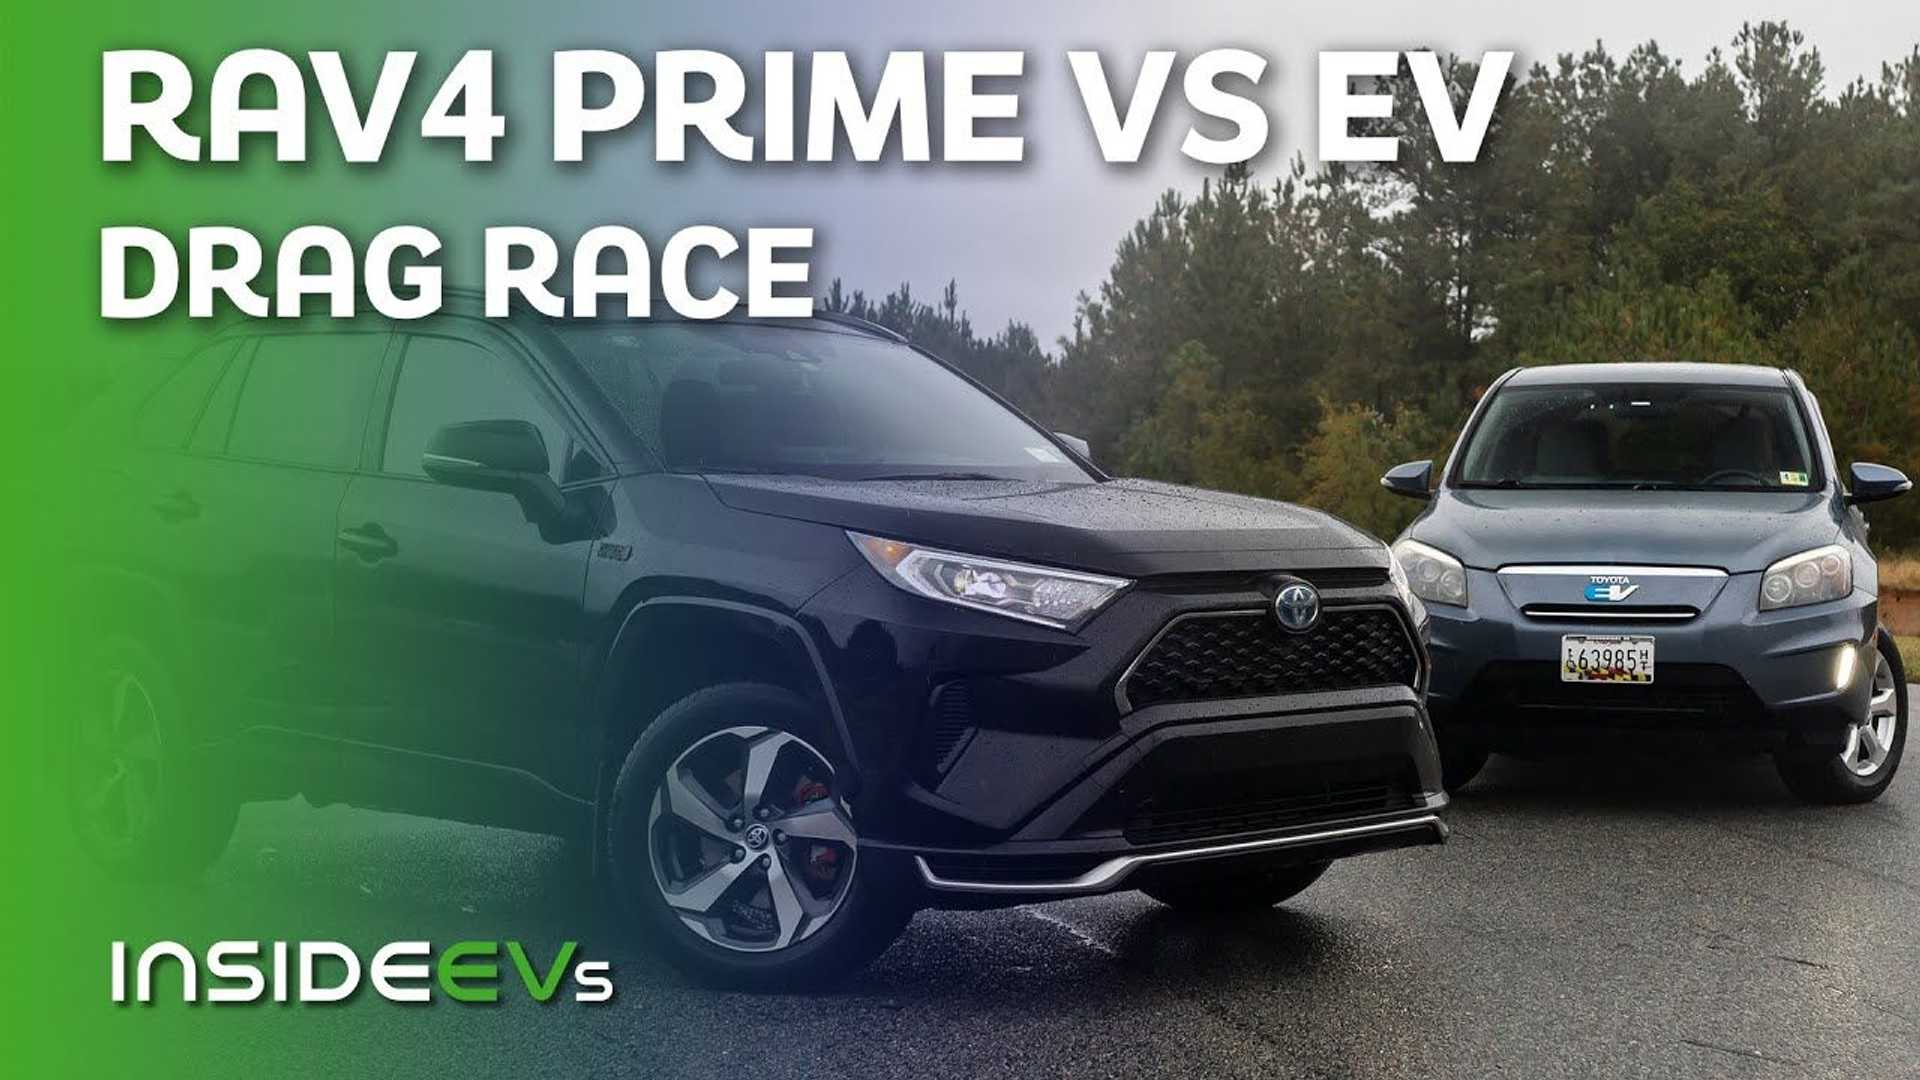 Watch Us Drag Race A Toyota RAV4 Prime Against A 2013 RAV4 EV